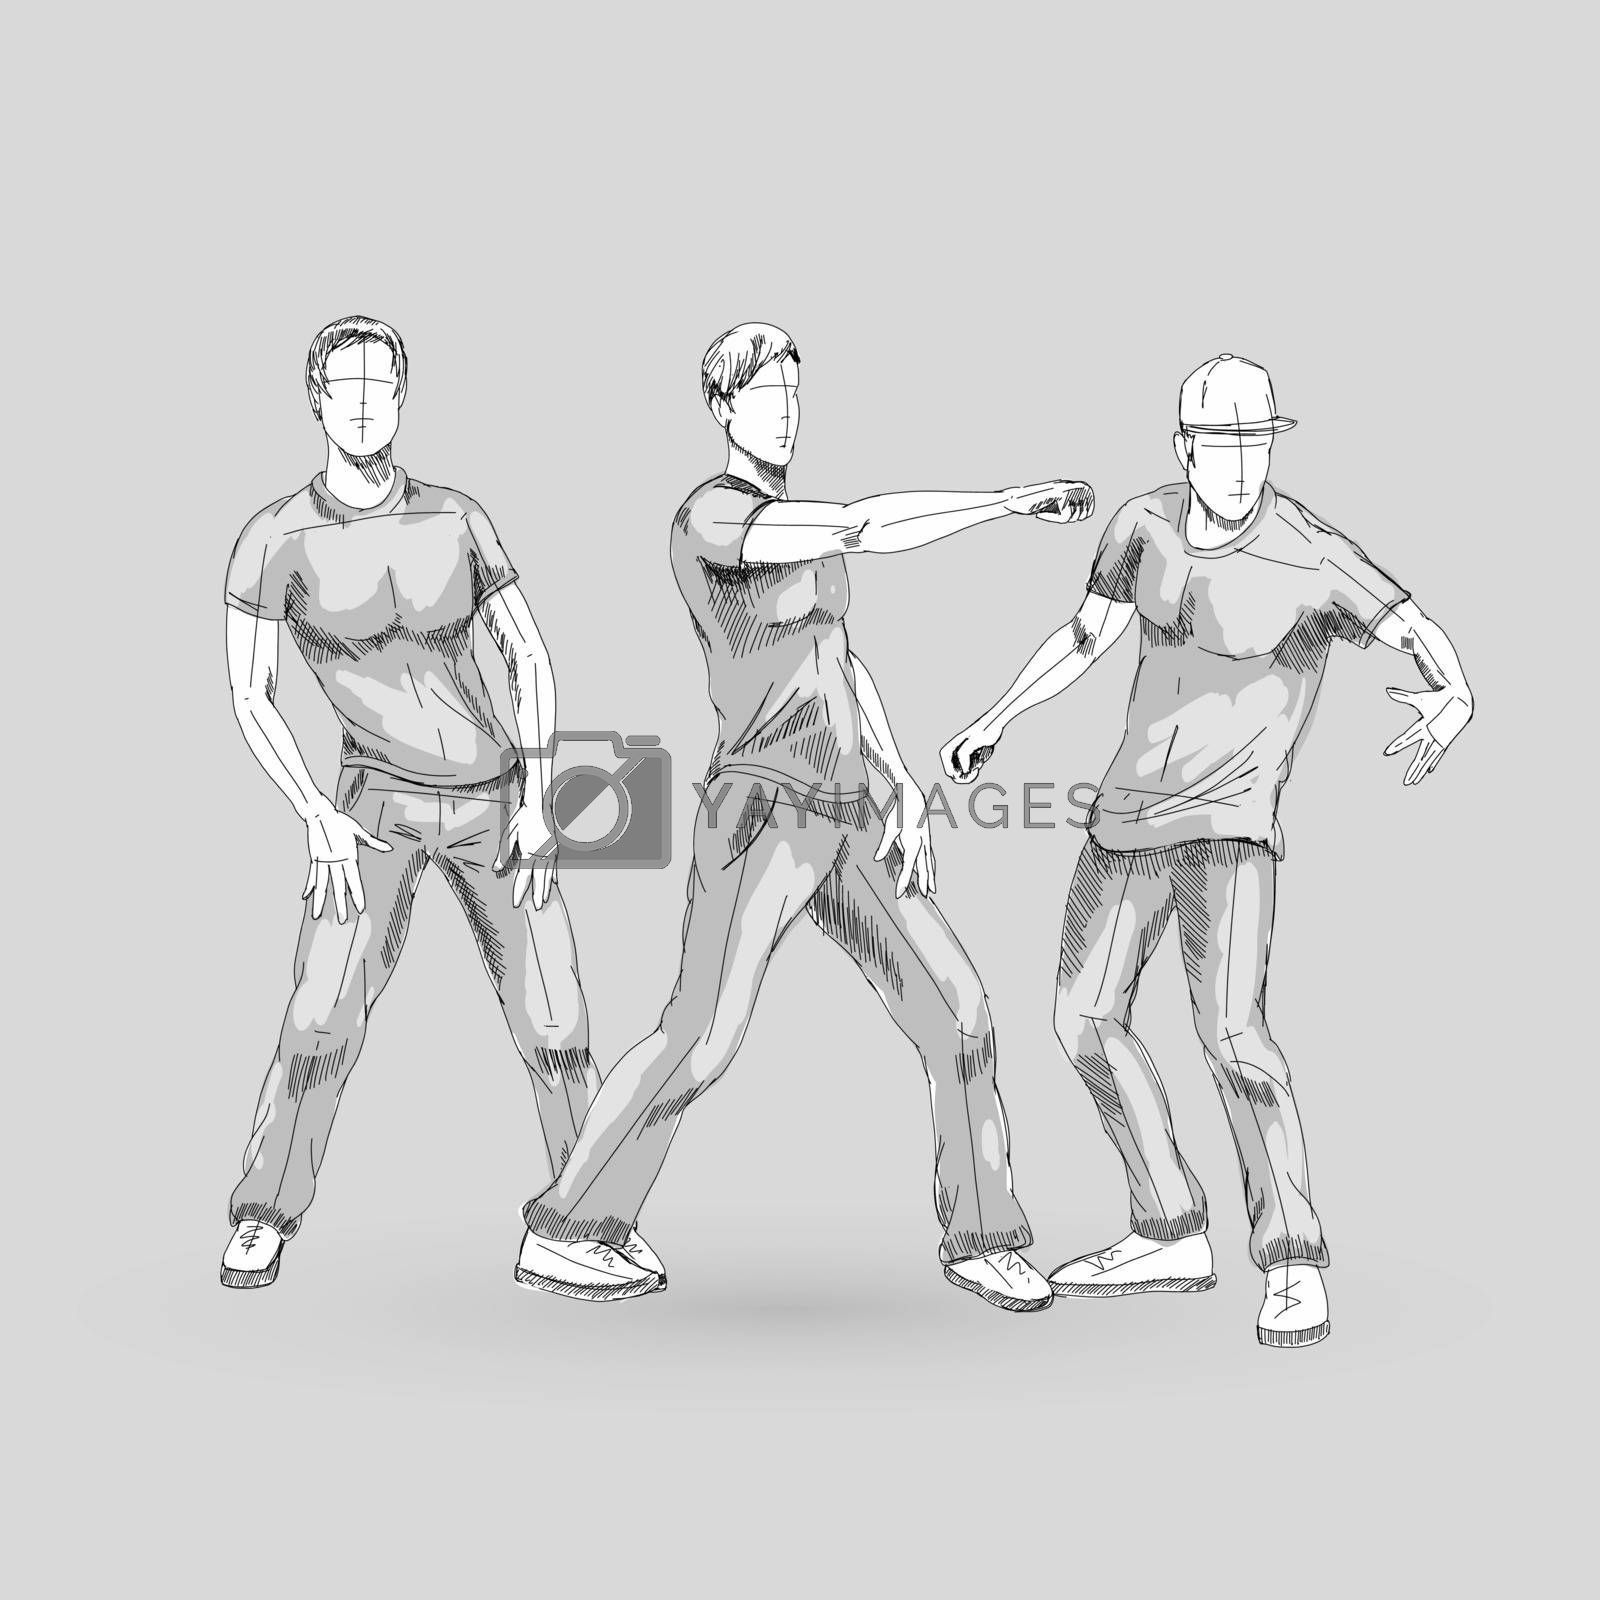 Set of Sketch Dancing Males in Different Poses on the Dance Floor. Hip Hop Choreography